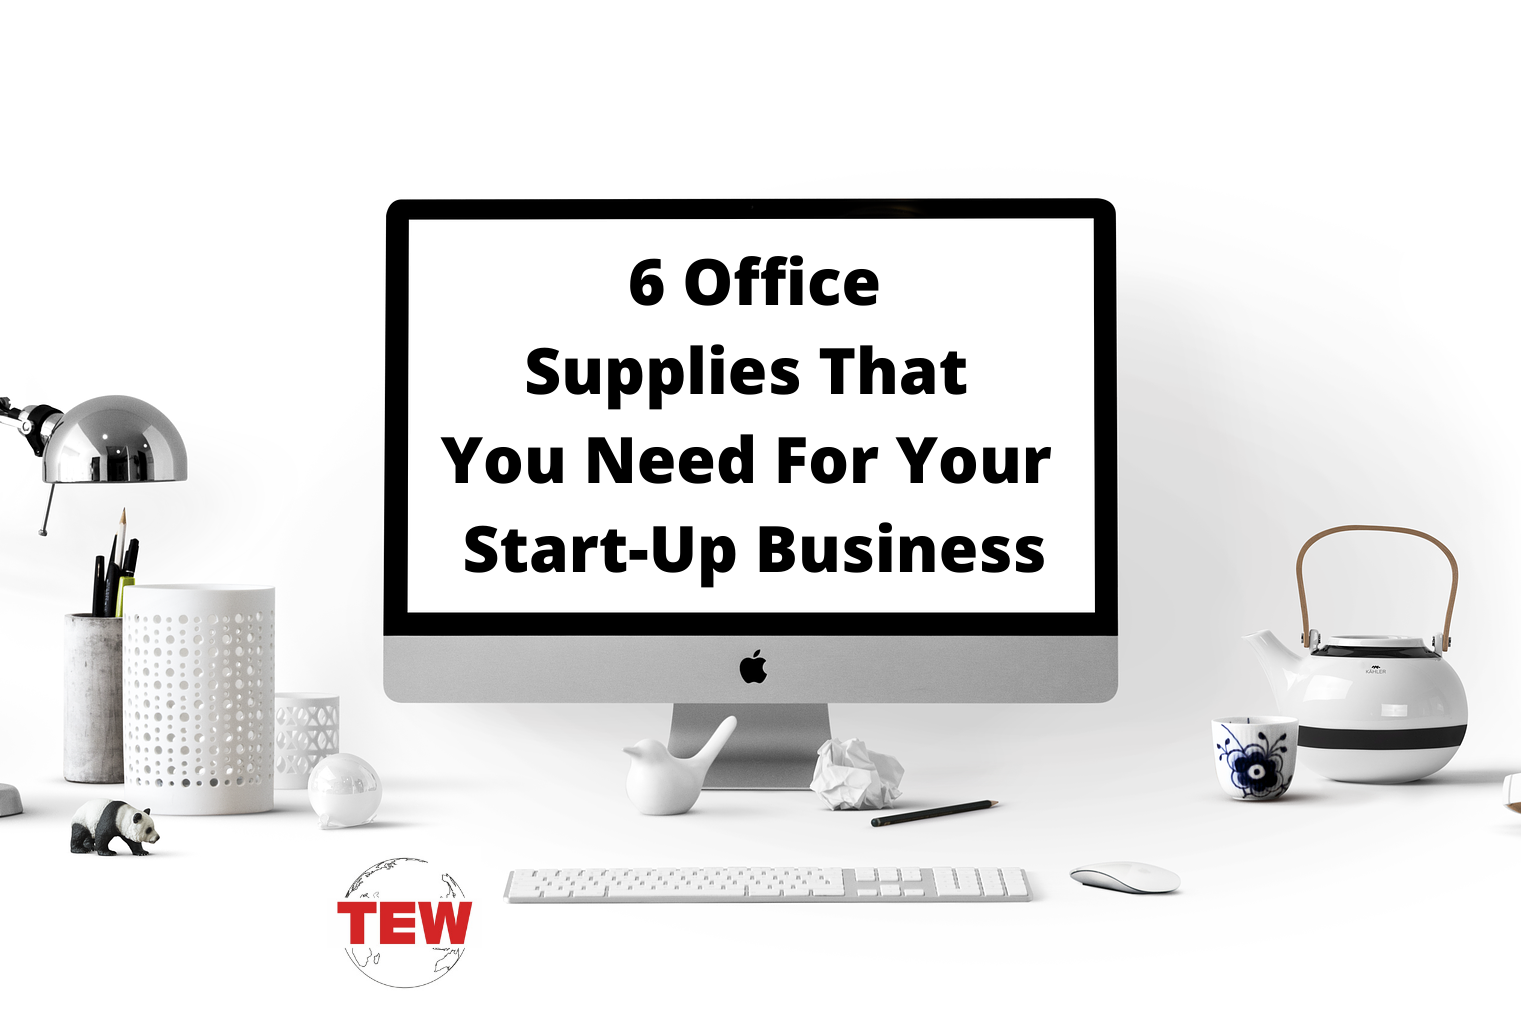 6 Office Supplies That You Need For Your Start-Up Business